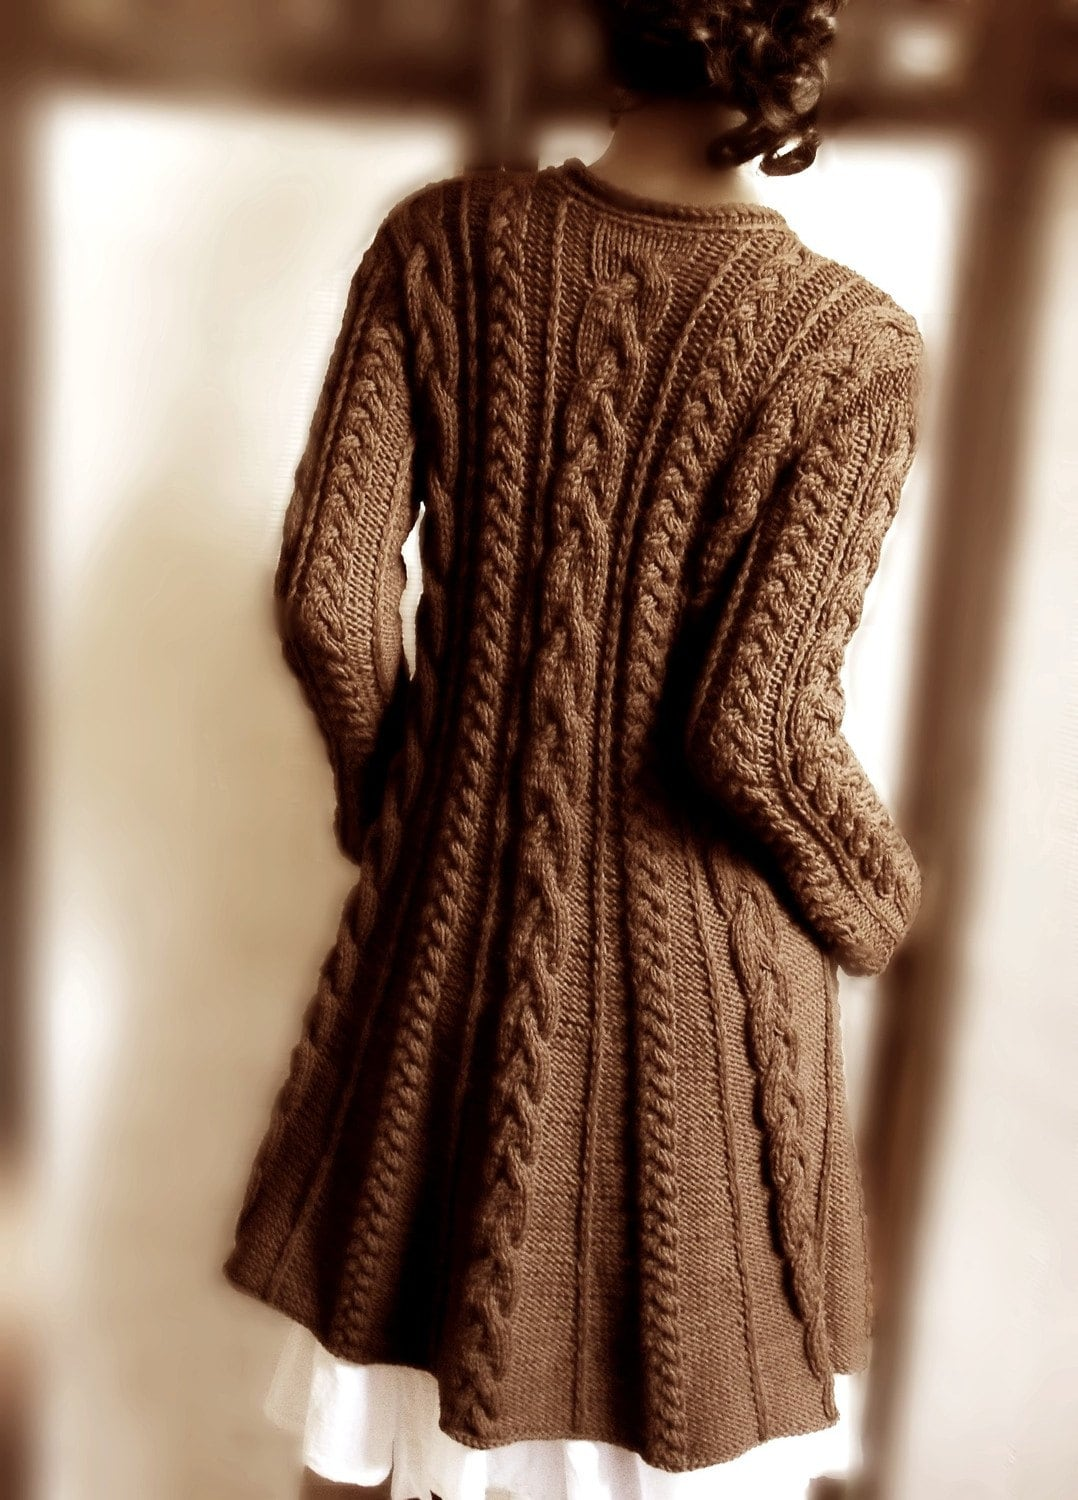 Handknitted Cabled A Line coat in pure wool Chocholate brown by Pilland